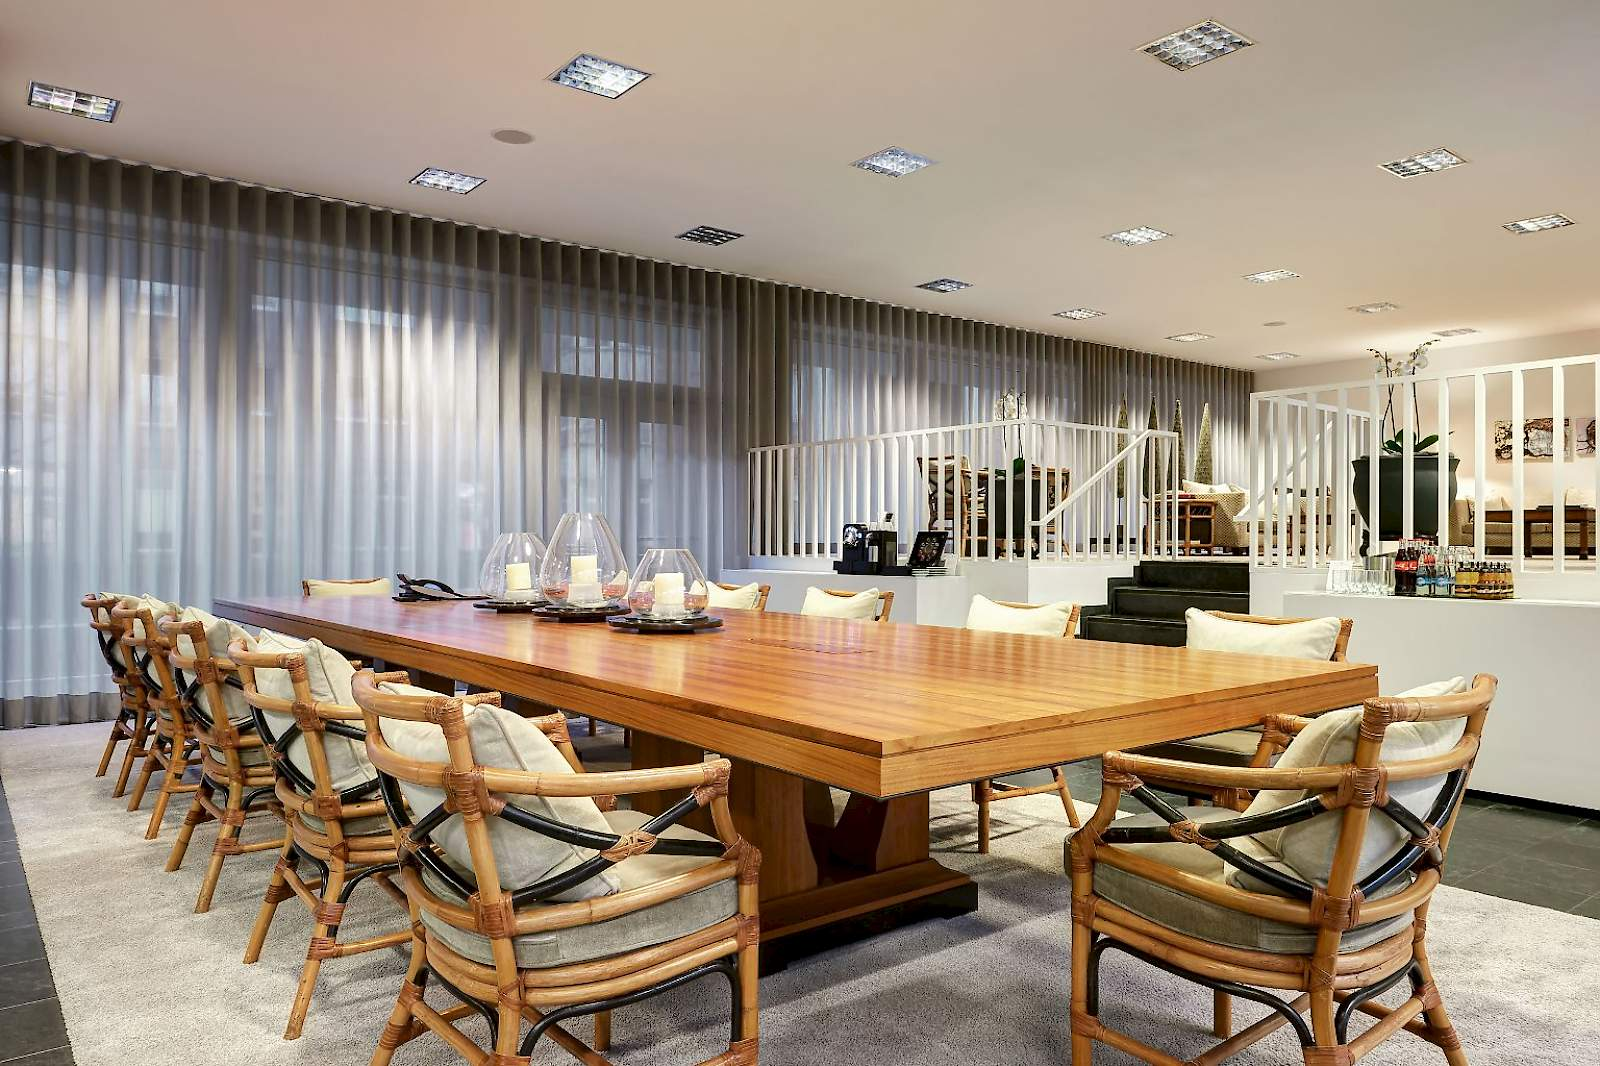 Plenty of room for inspiration is provided by our spacious meeting room at The Mandala Suites